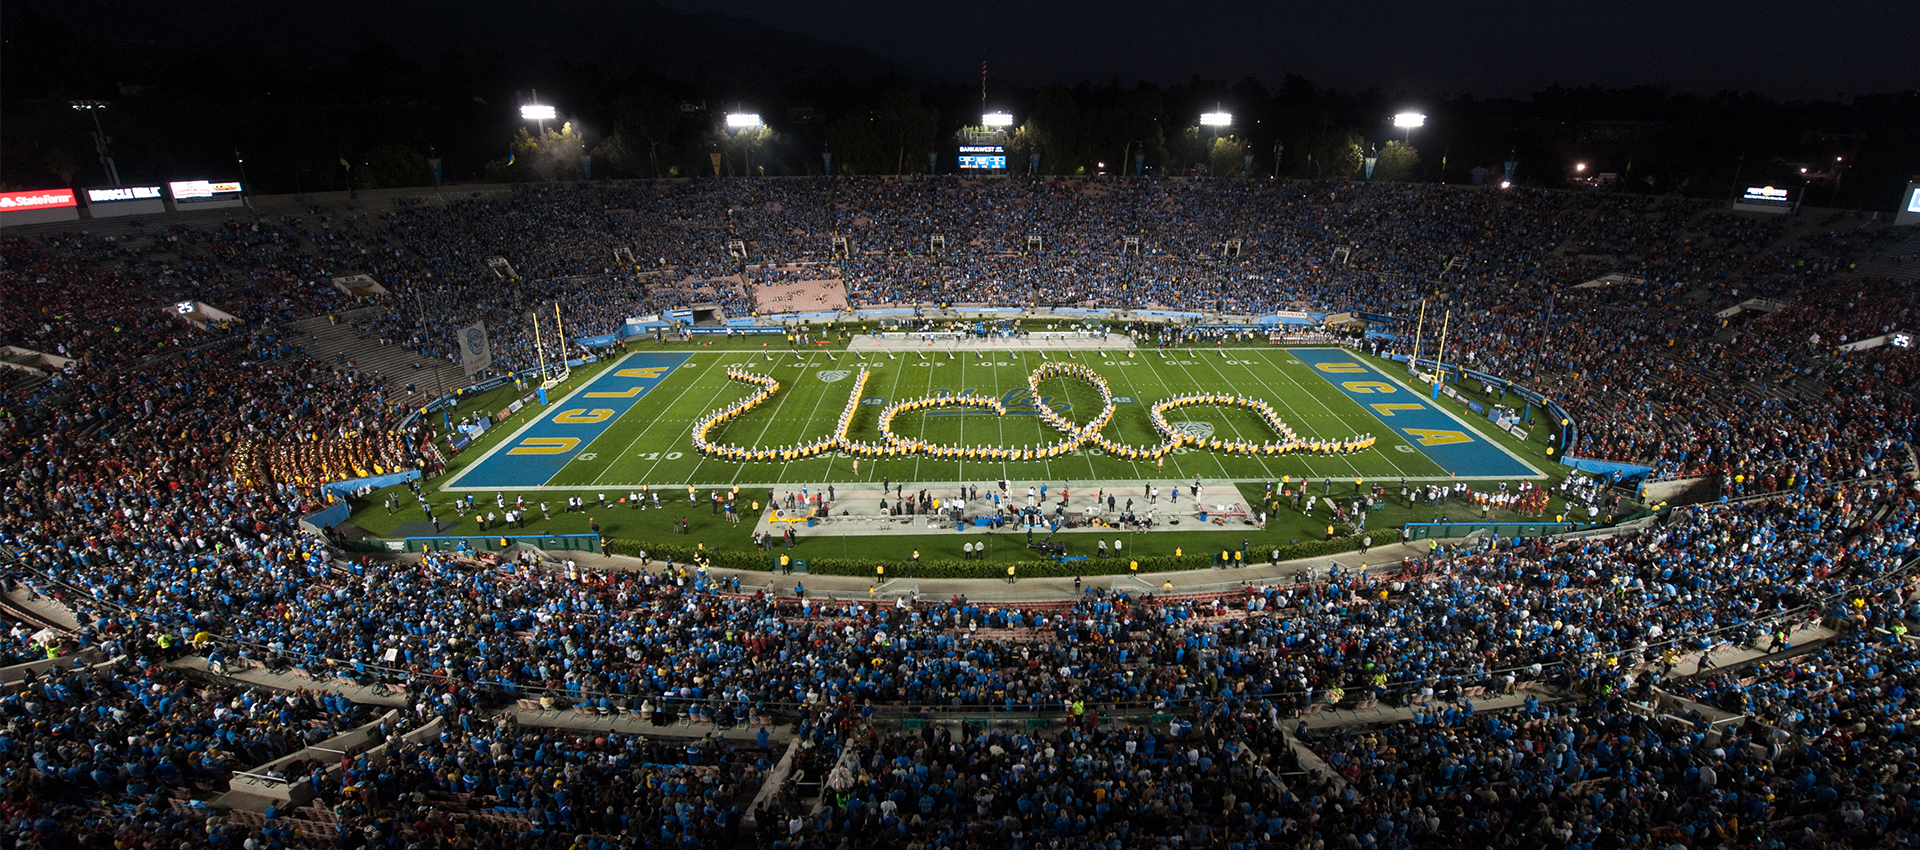 UCLA Football Stadium